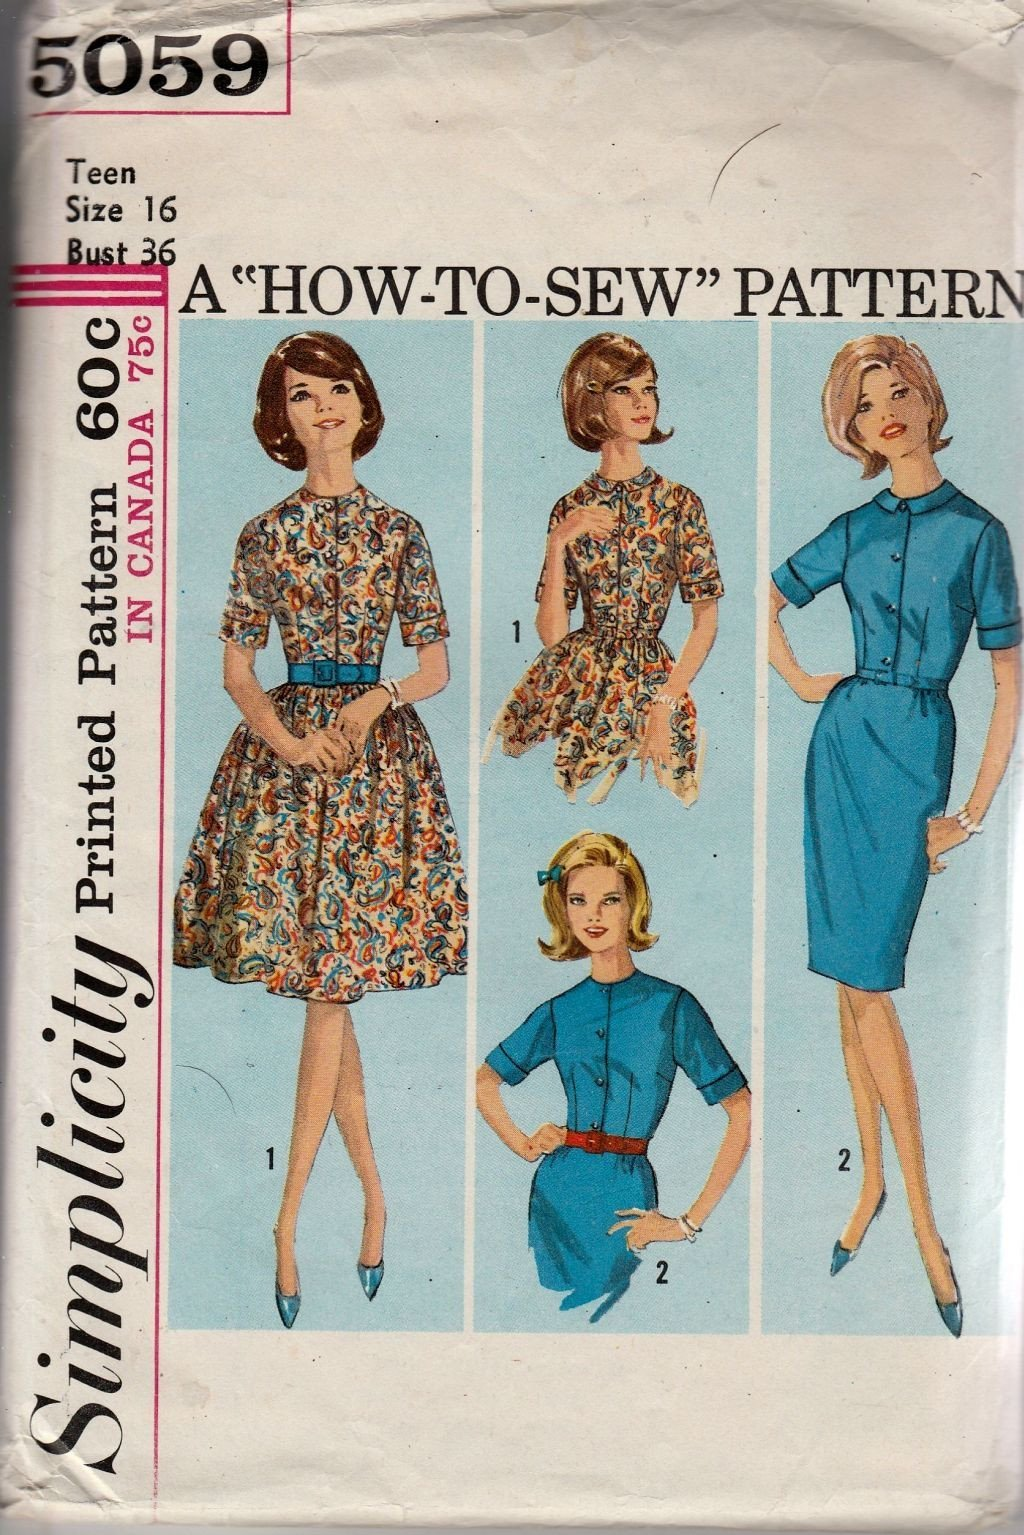 Simplicity 5059 Vintage 1960's Sewing Pattern Ladies Teen Sheath Shirtwaist Dress - VintageStitching - Vintage Sewing Patterns